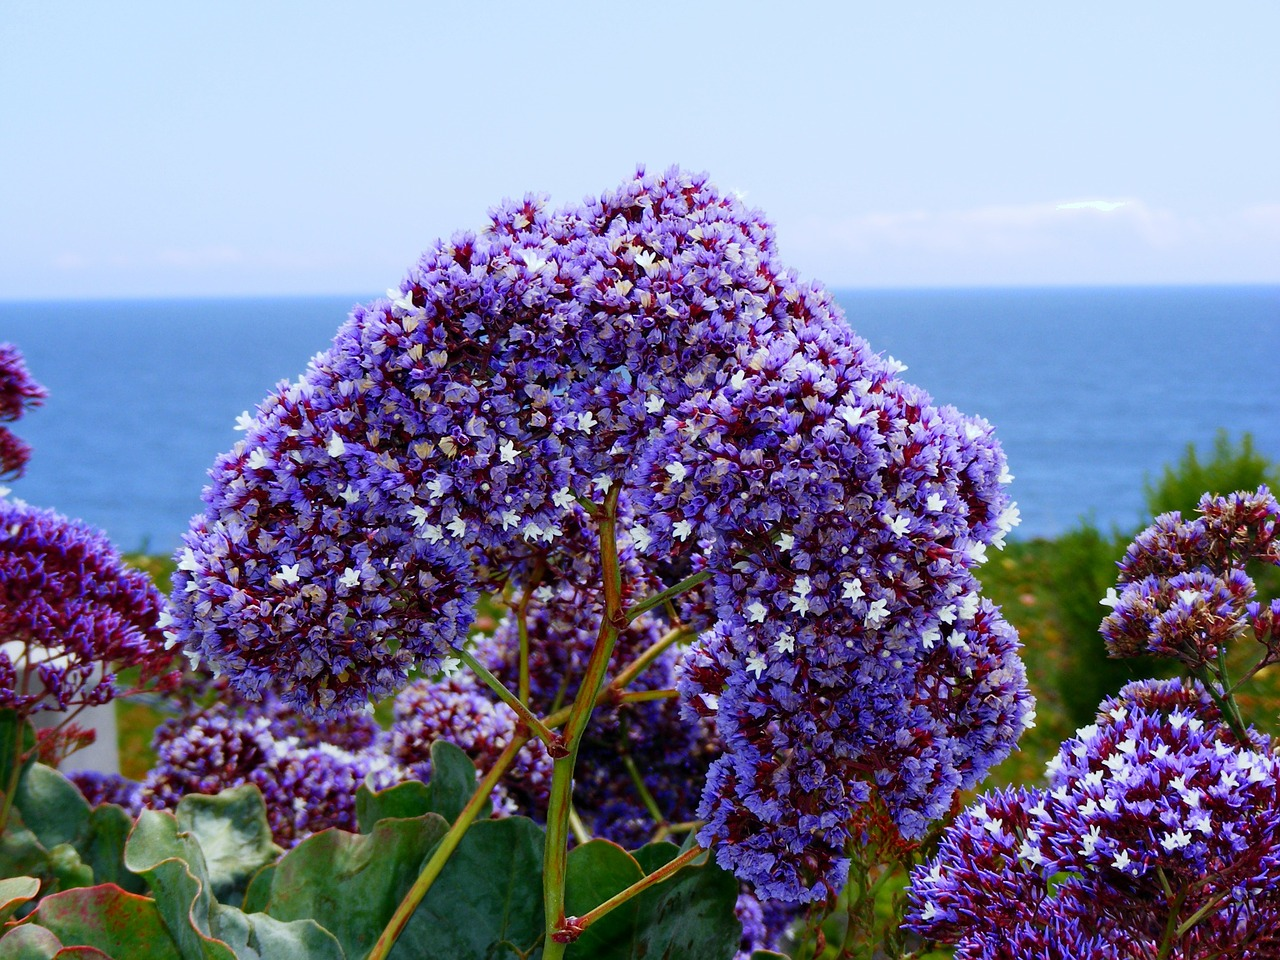 statice,sea lavender,coastal bluffs,california,pacific,pacific ocean,soothing,shoreline,ocean,nature,coast,sea,water,flower,purple flower,flowers,plants,free pictures, free photos, free images, royalty free, free illustrations, public domain